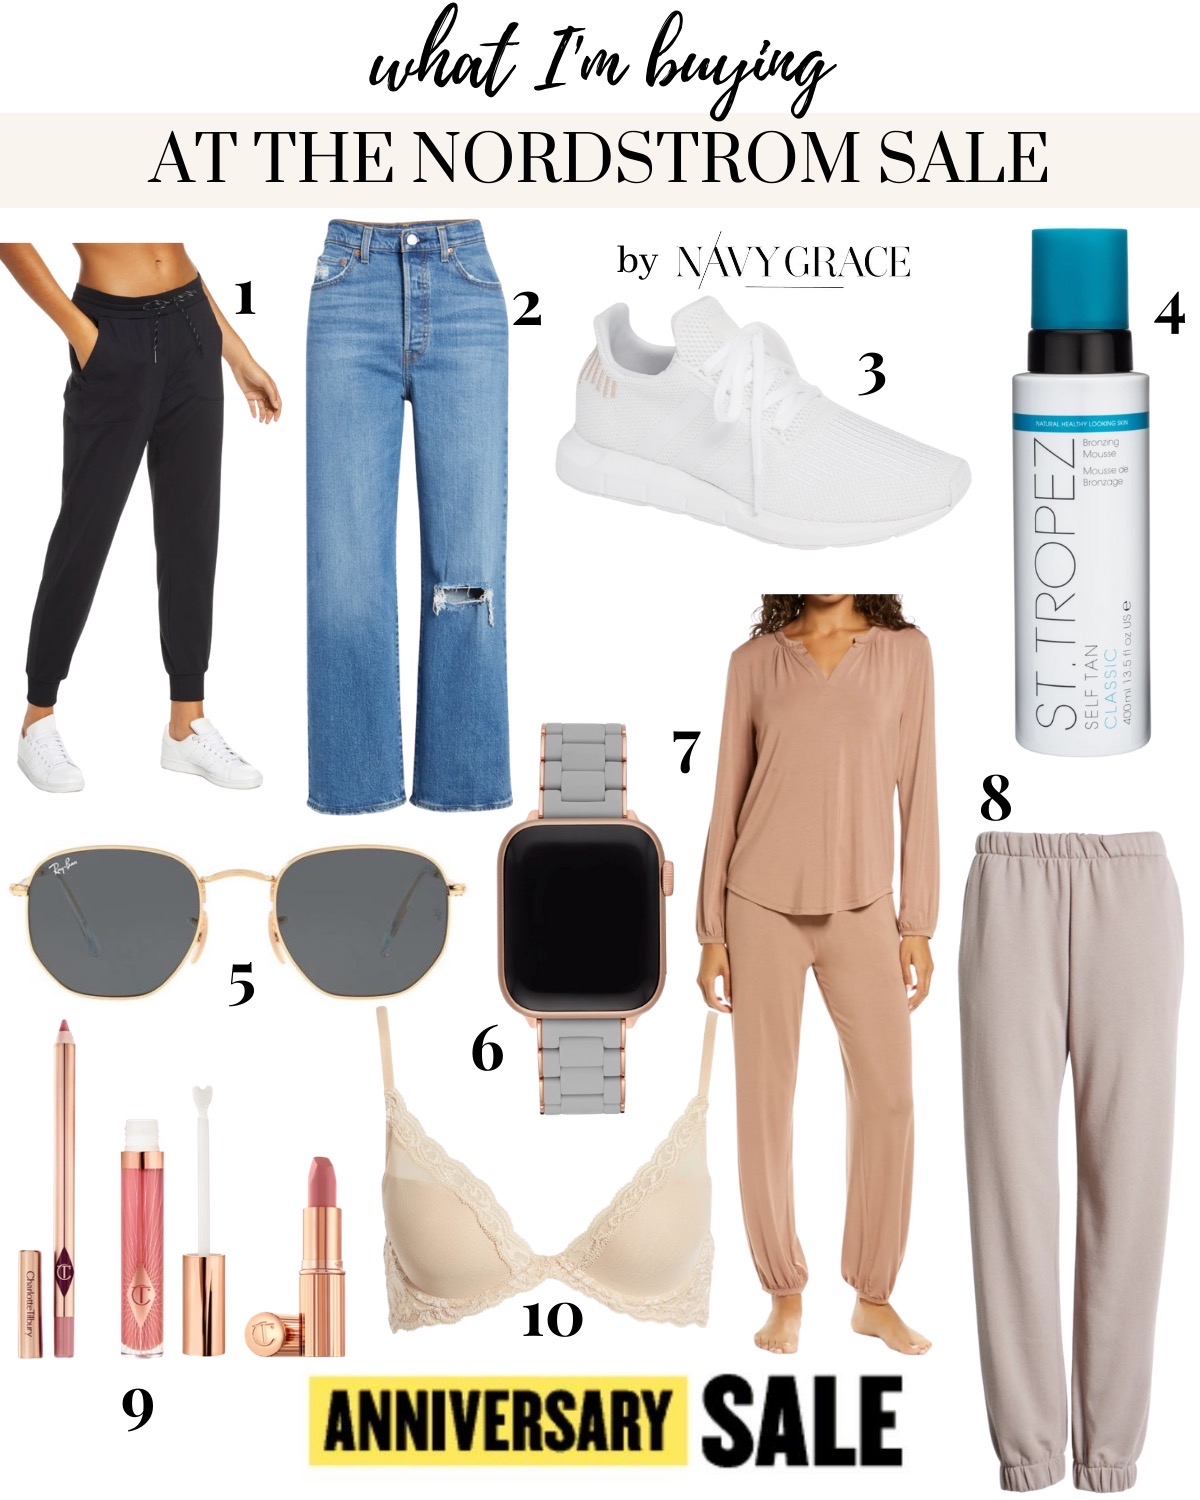 Nordstrom Anniversary Sale by popular San Diego fashion blog, Navy Grace: collage image of Nordstrom Ray-Ban 51mm Hexagonal Flat Lens Sunglasses, Nordstrom Black Live In Joggers, Nordstrom Levi's Ribcage Denim, Nordstrom White Adidas Swift Run Sneaker, St. Tropez Self Tanner, Michele Silicone Apple Watch Band, Namaste Two-Piece Lounge Set BAREFOOT DREAMS, Pillow Talk Lip Set, and a Natori Bra.